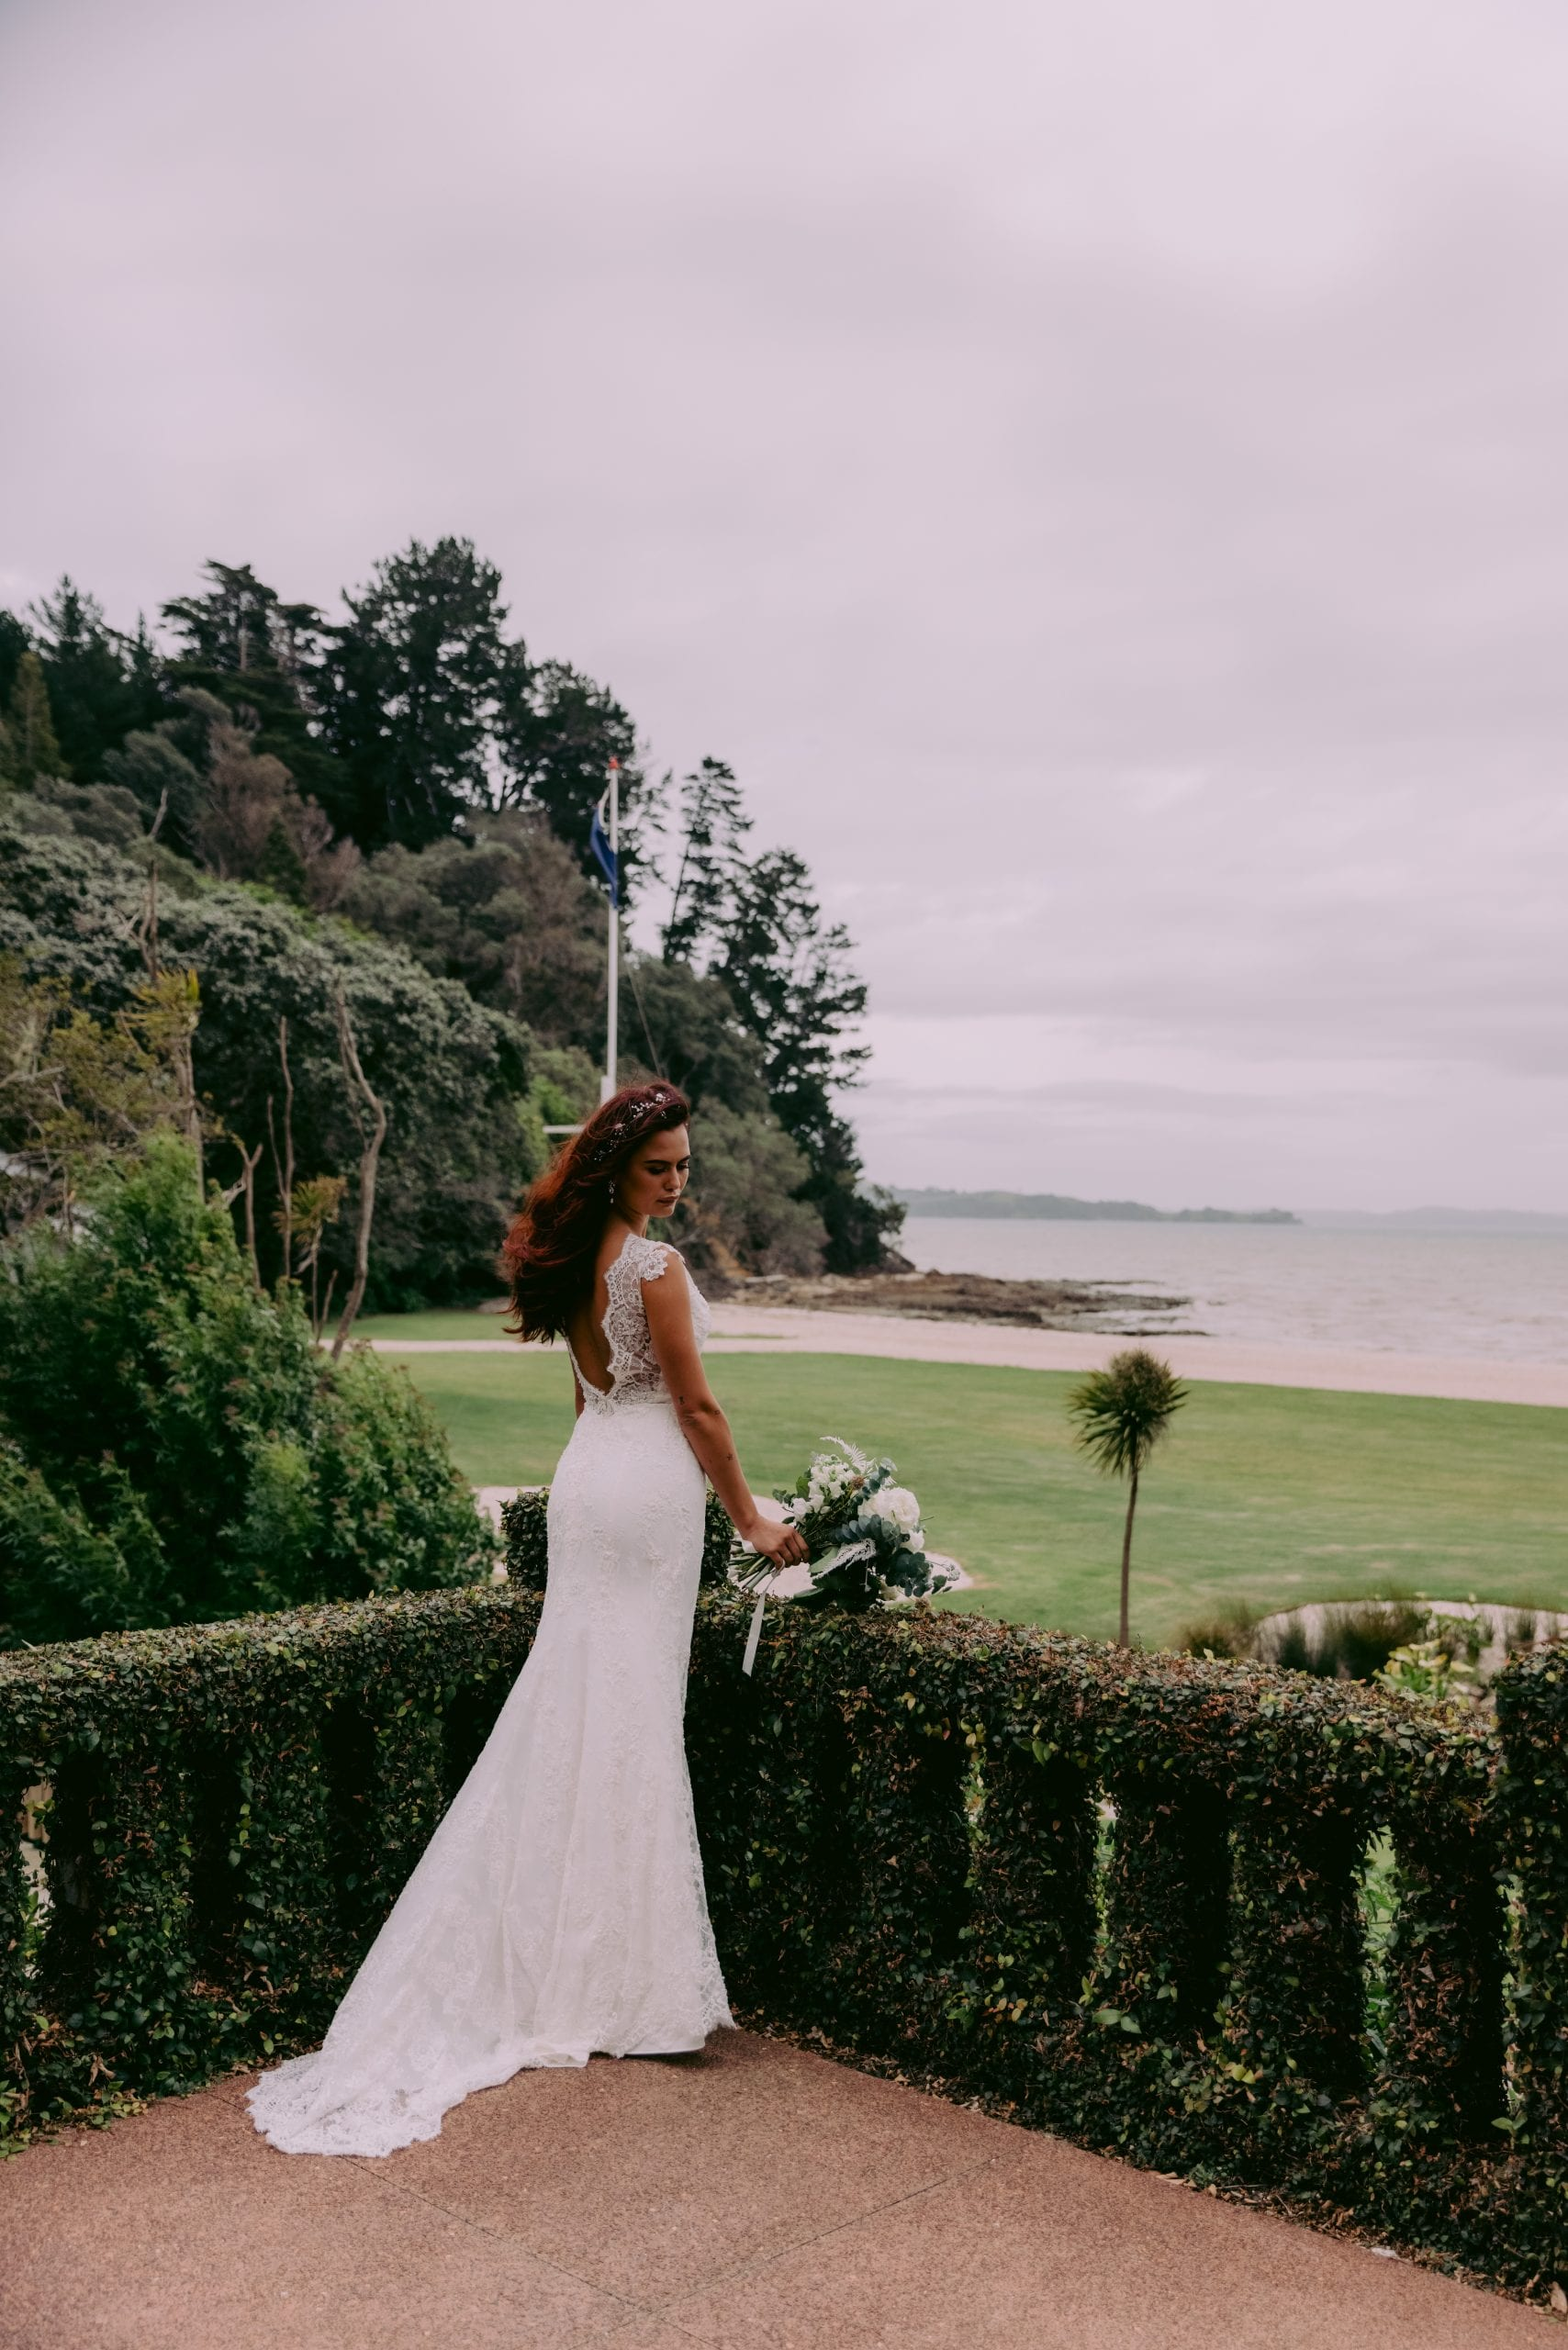 Fallyn Wedding gown from Vinka Design - This wedding dress is a timeless classic. Dramatic scallop lace and deep V-shaped neckline with beautiful low back and mini cap sleeves. This gown is cut in a fit-and-flare design with a side split. Model wearing gown in Clevedon gardens looking out to sea.